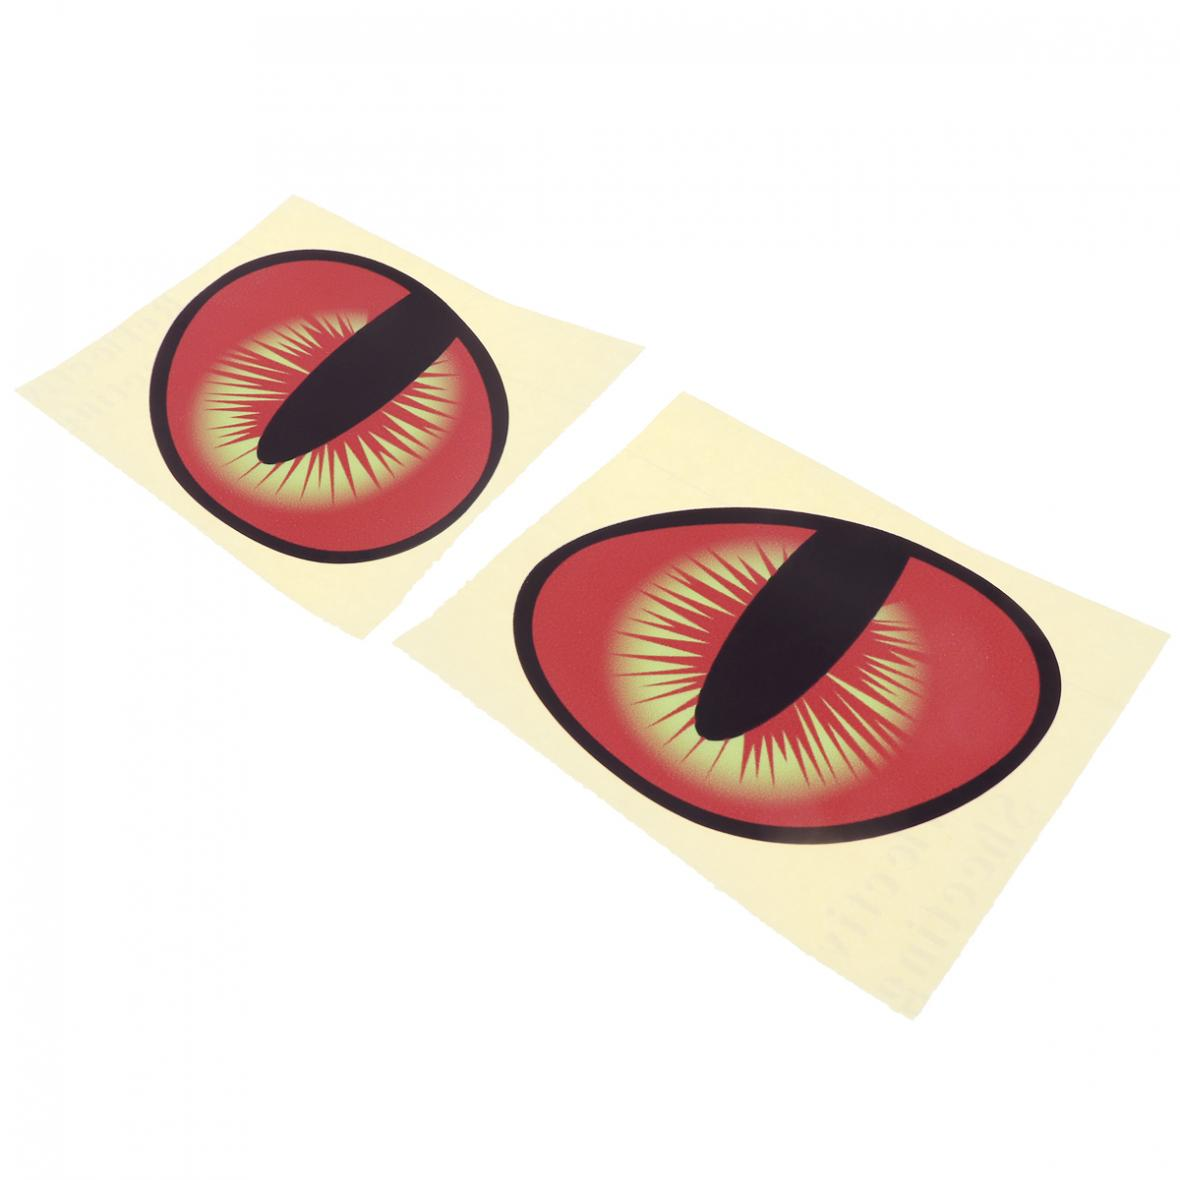 2pcs 10 x 8CM Waterproof 3D Eye Pattern Reflective Material Creative Funny Stereoscopic Car Sticker Accessories